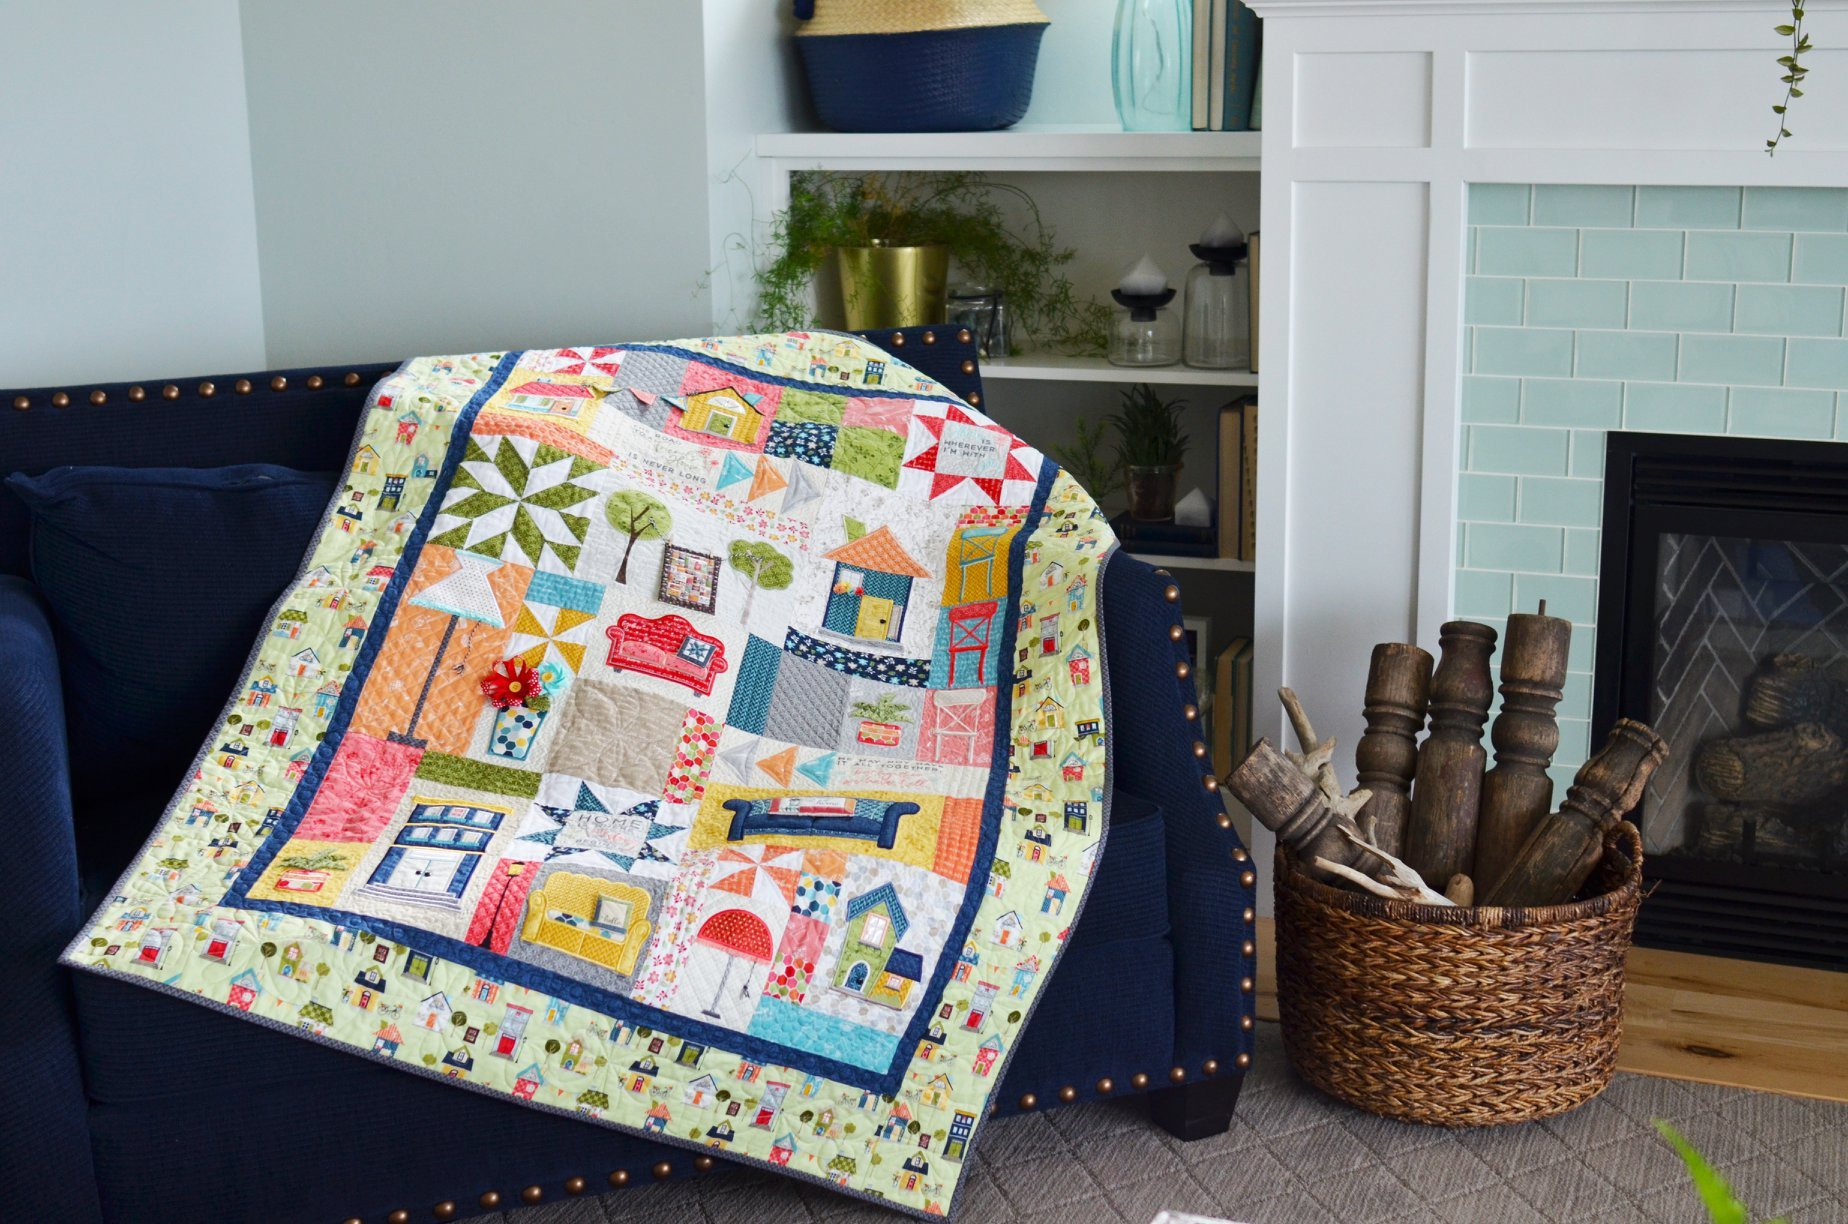 Make Yourself At Home <br>Quilt Kit Embroidery Version